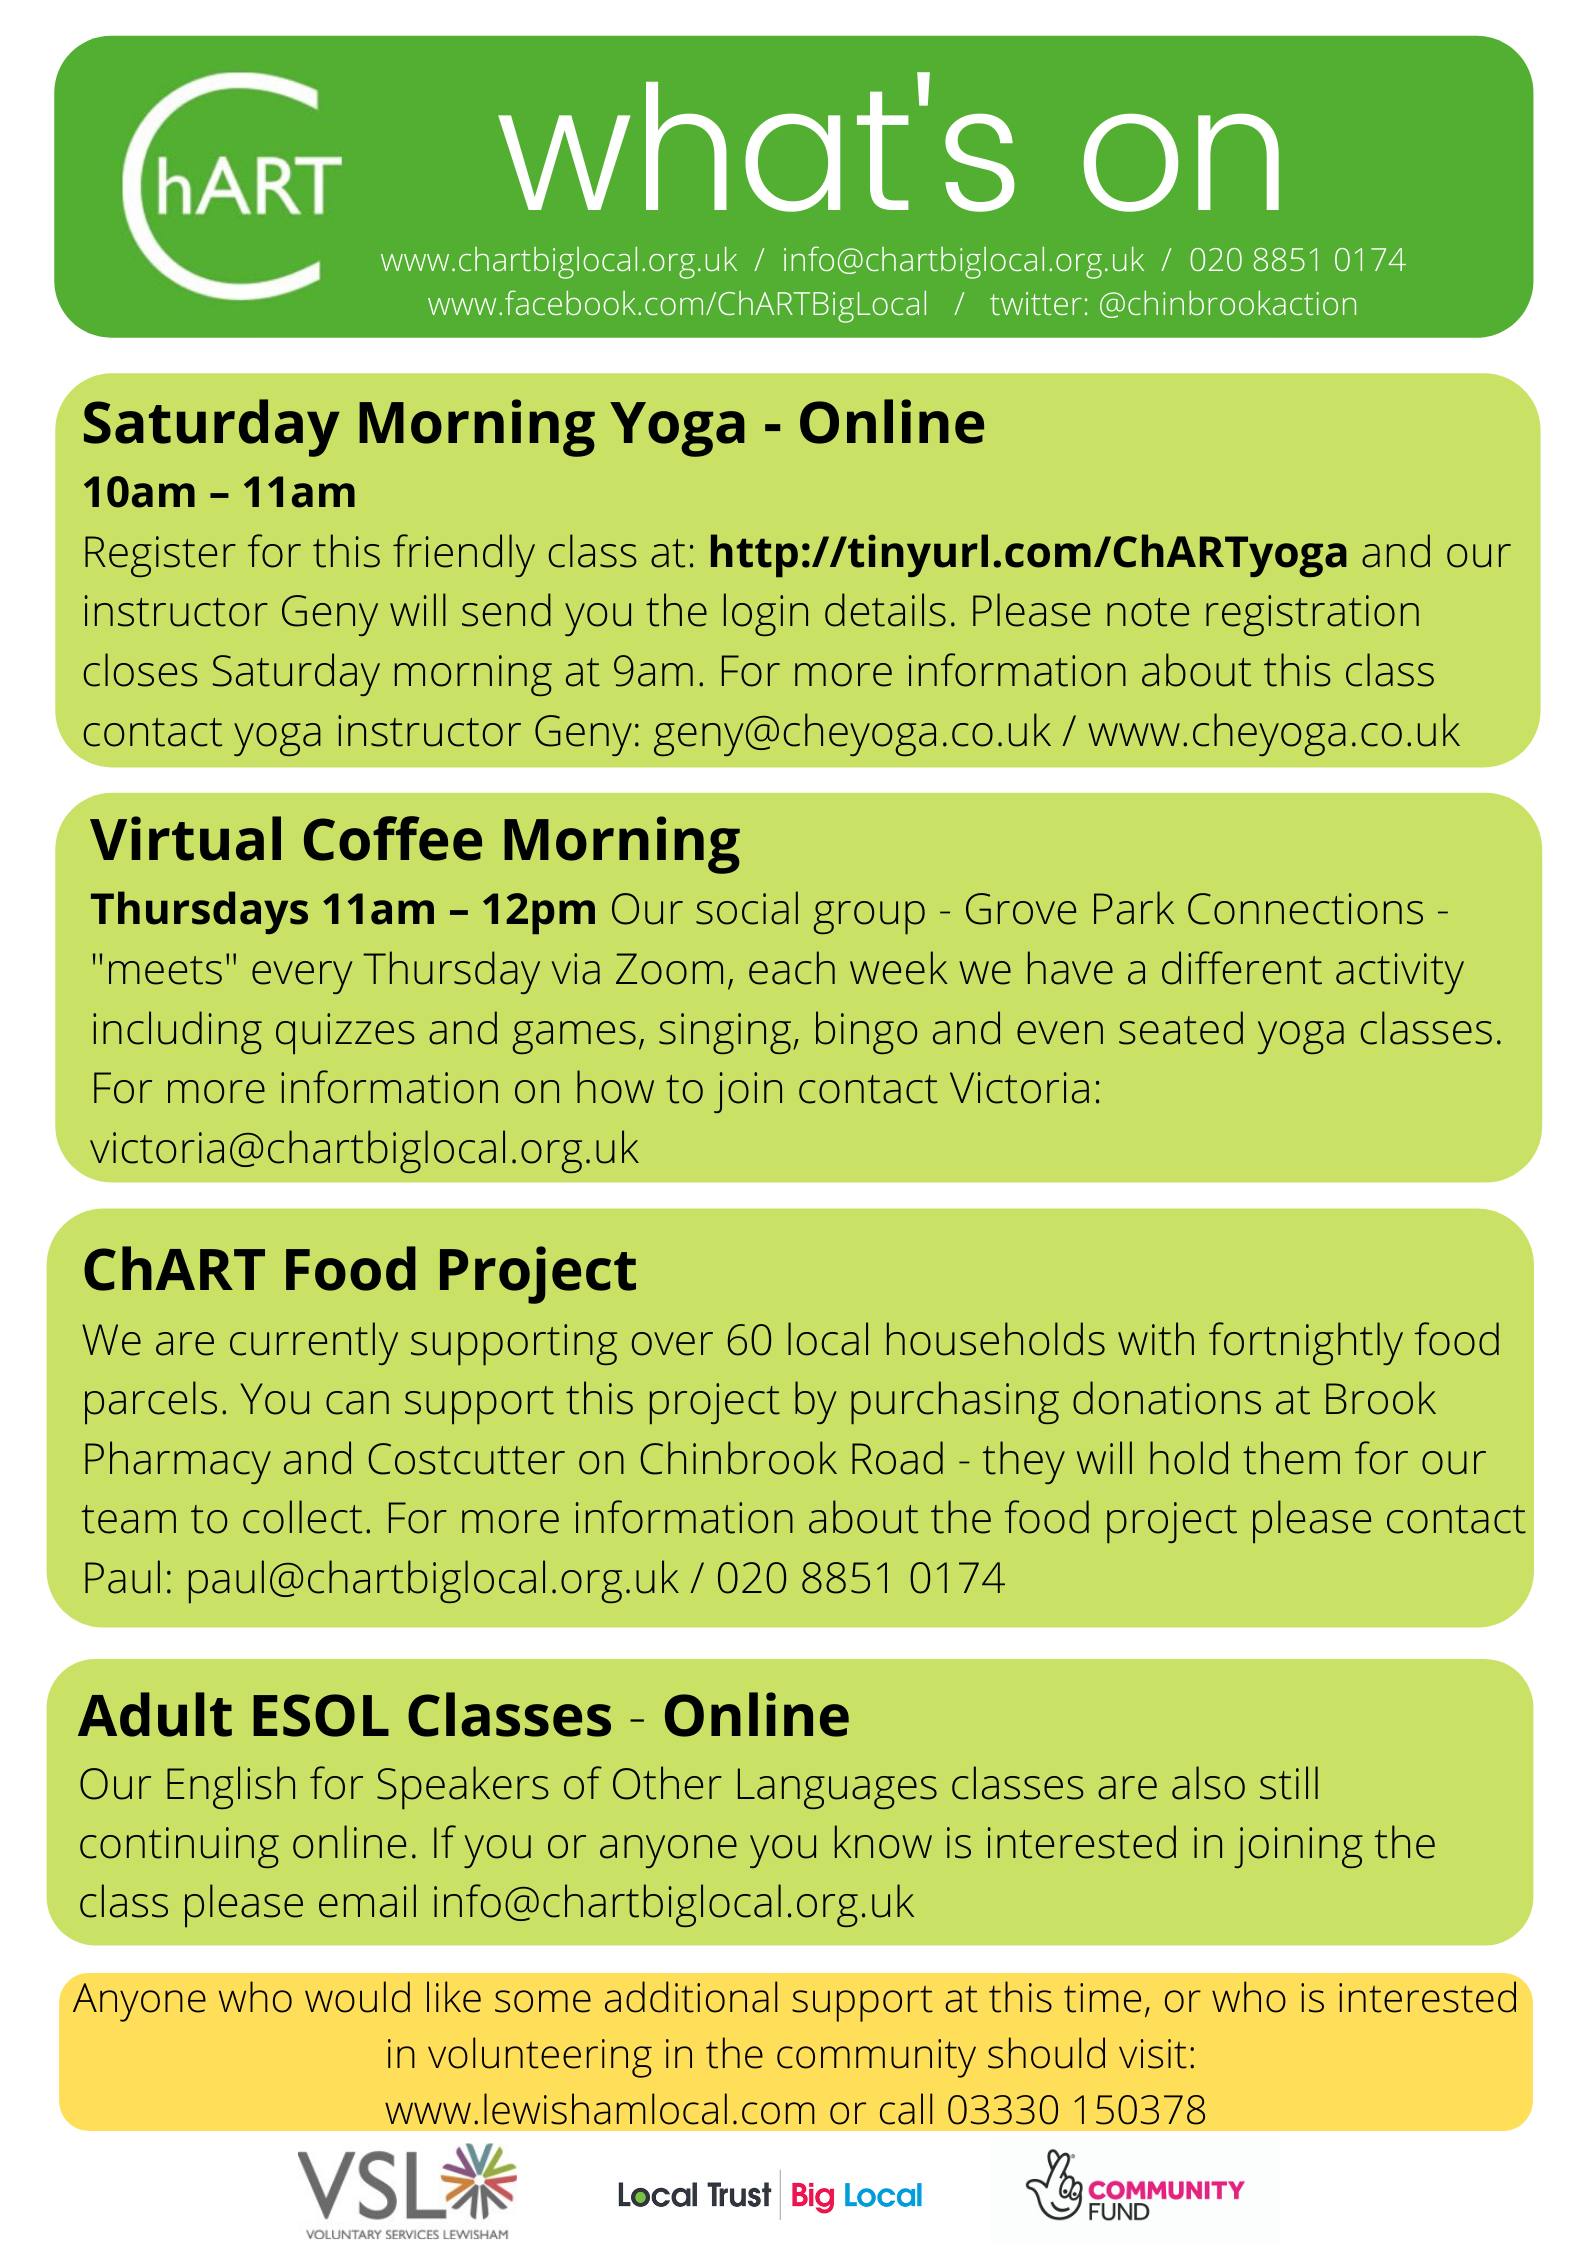 Flyer with text in a series of boxes Top box - white text on dark green background ChART What's On. Four boxes below are pale green with black text and advertise a series of activities 1) Saturday Morning Yoga Class Online, register at http://tinyurl.com/ChARTyoga 2) Virtual Coffee Morning Thursdays 11am email victoria@chartbiglocal.org.uk for more details , 3) ChART Food Project supporting more than 60 local households, you can support by purchasing donations as Brook Pharmacy or Costcutter on Chinbrook Road. For more details of Food Project email paul@chartbiglocal.org.uk 4) Adult ESOL Classes running online, for more details email info@chartbiglocal.org.uk